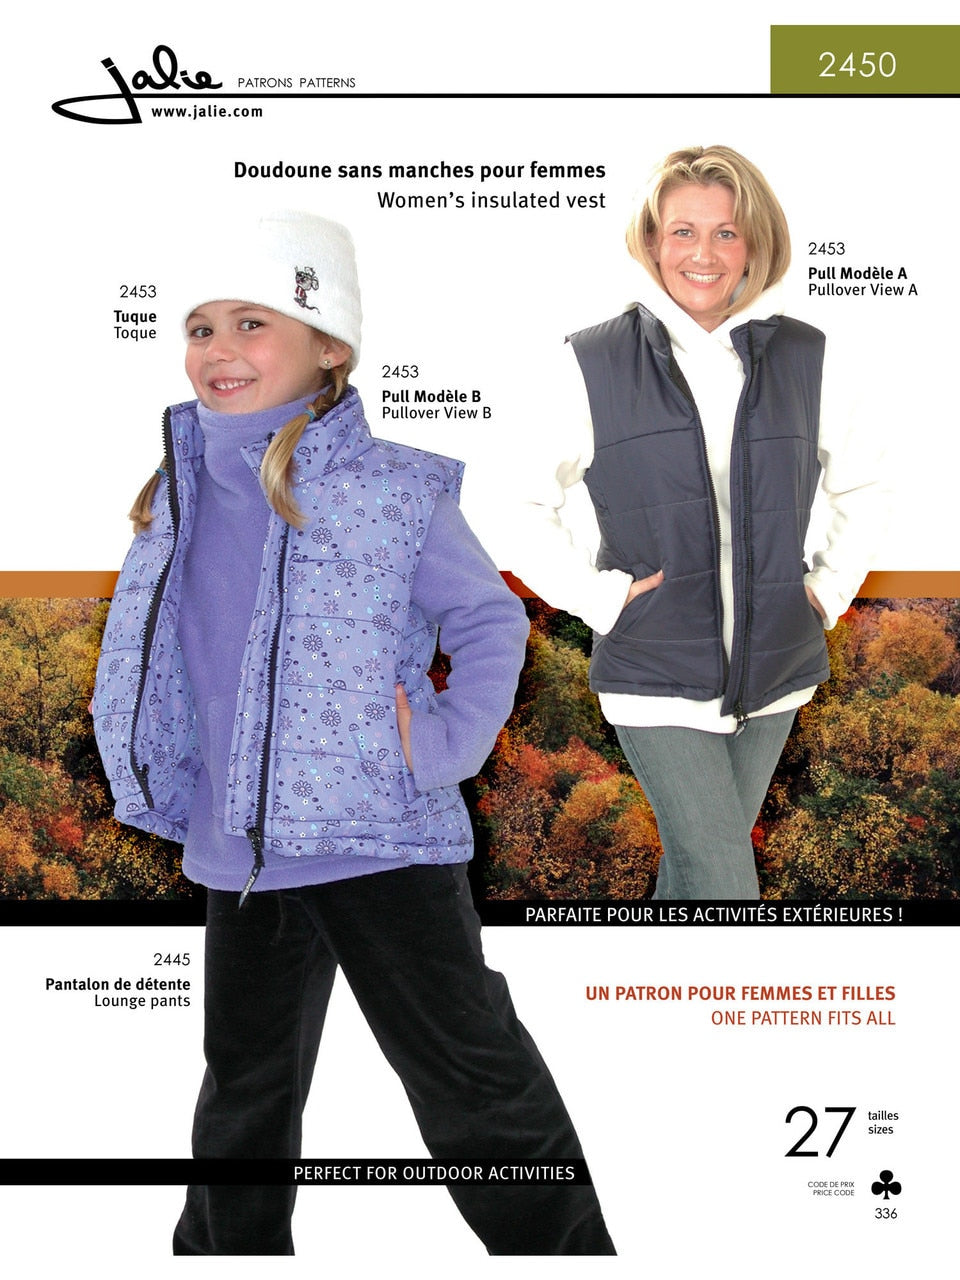 Jalie - 2450 Women's Insulated Vest